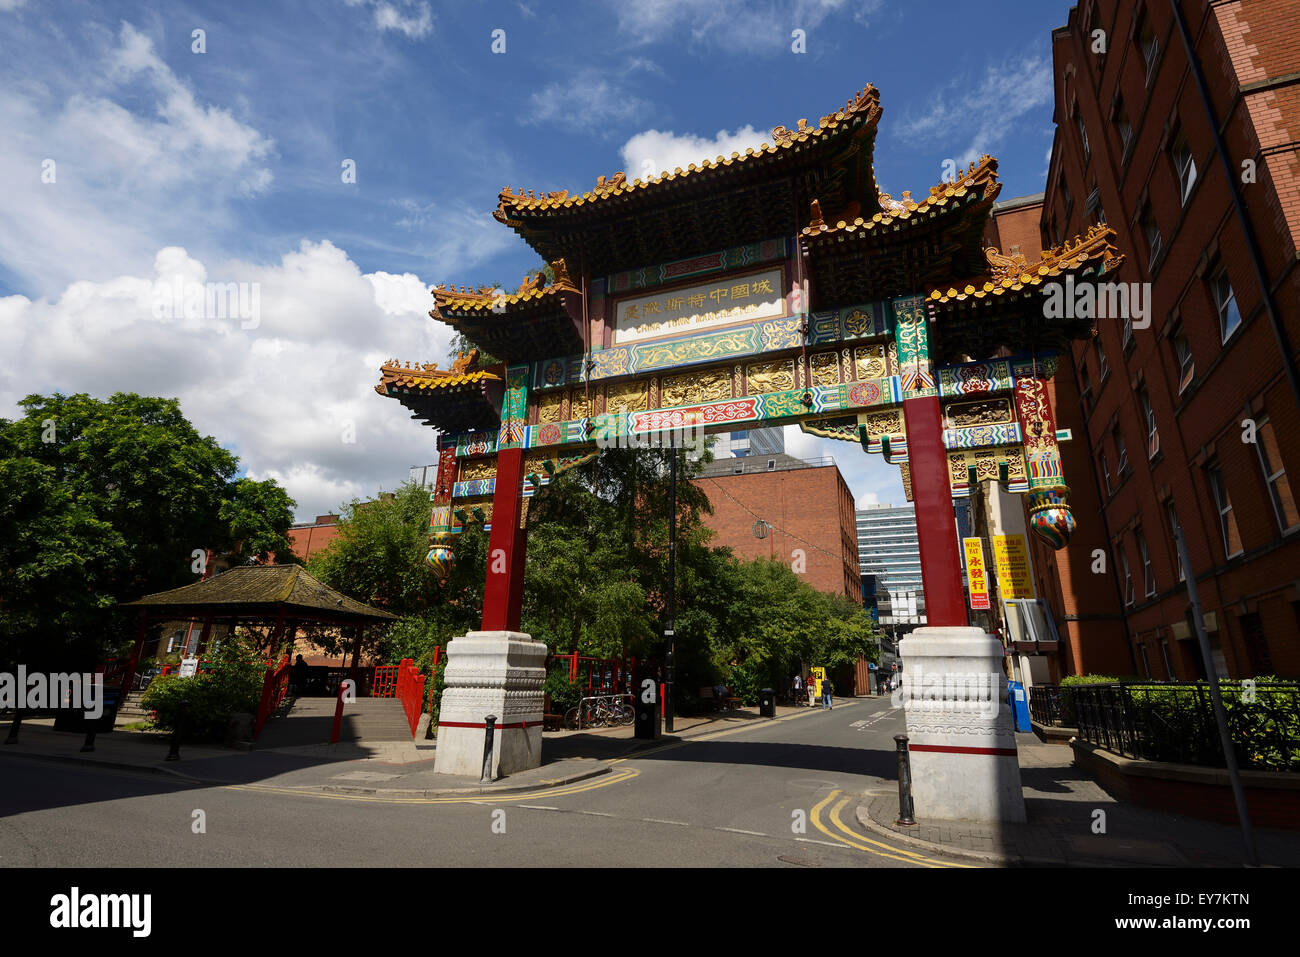 The Chinese Arch in the Chinatown district of Manchester city centre UK - Stock Image